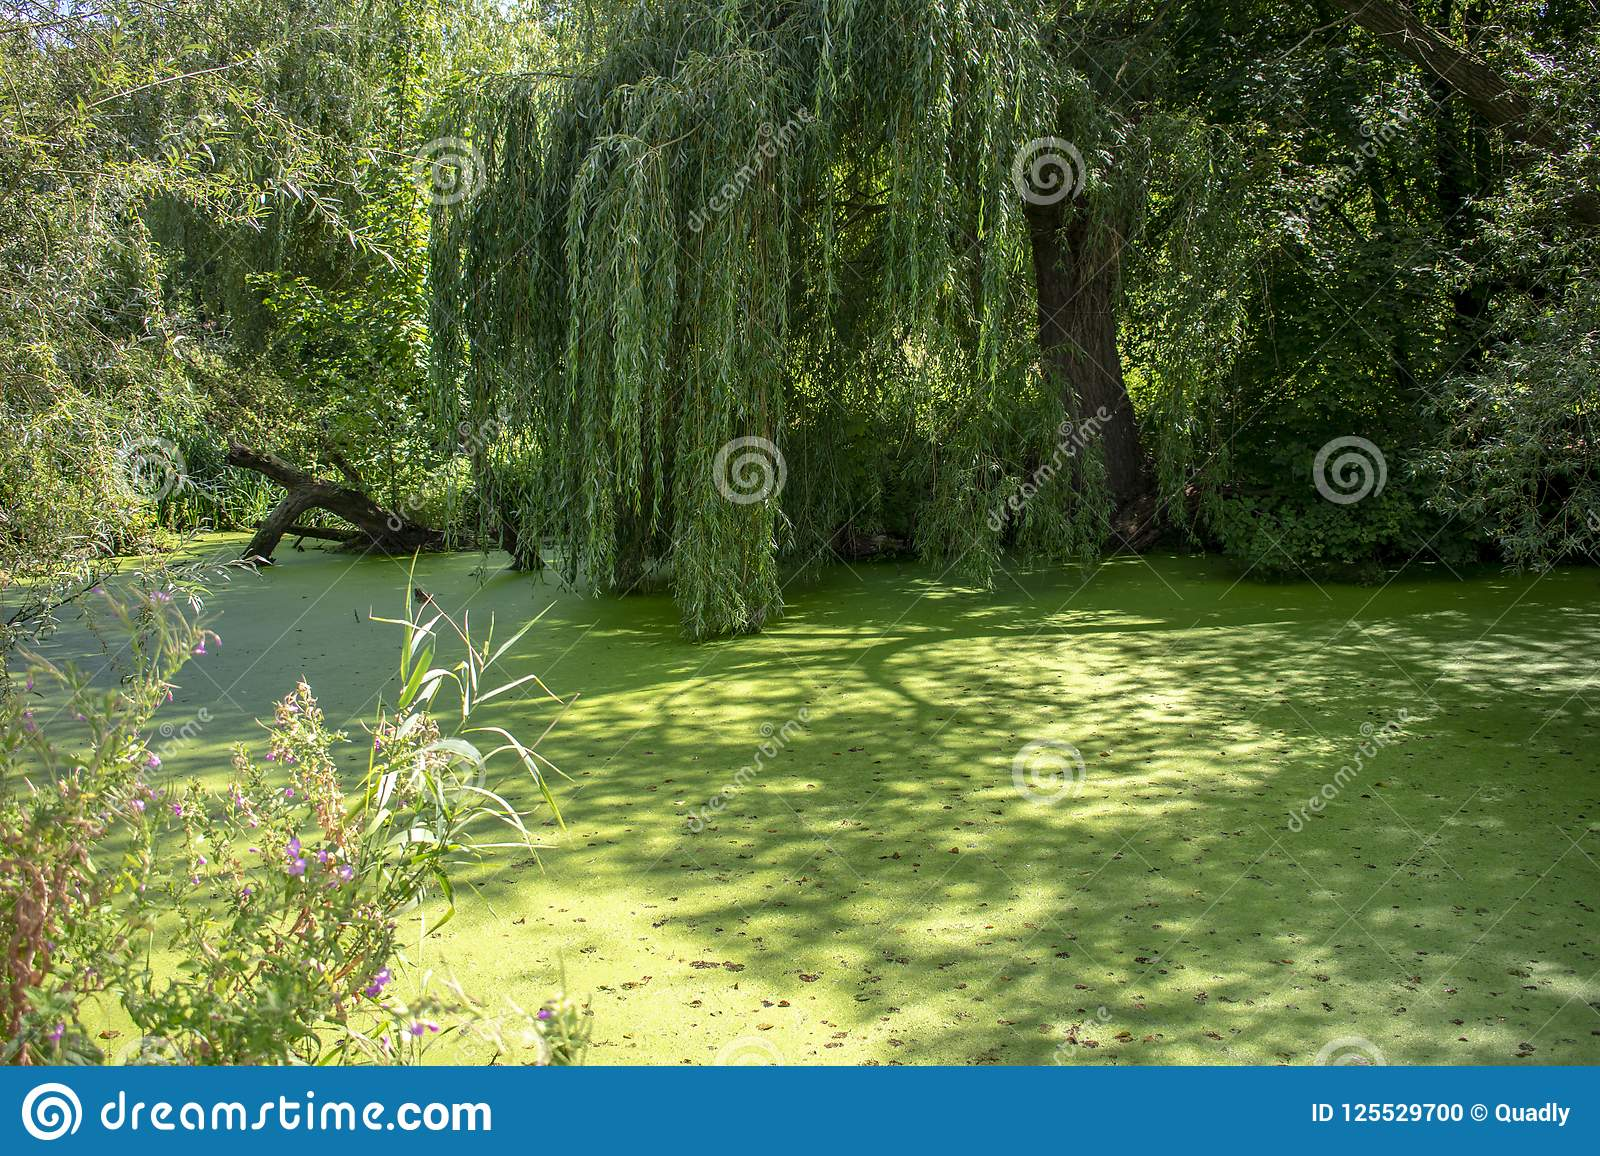 Haunted pond with algae and weeping willow